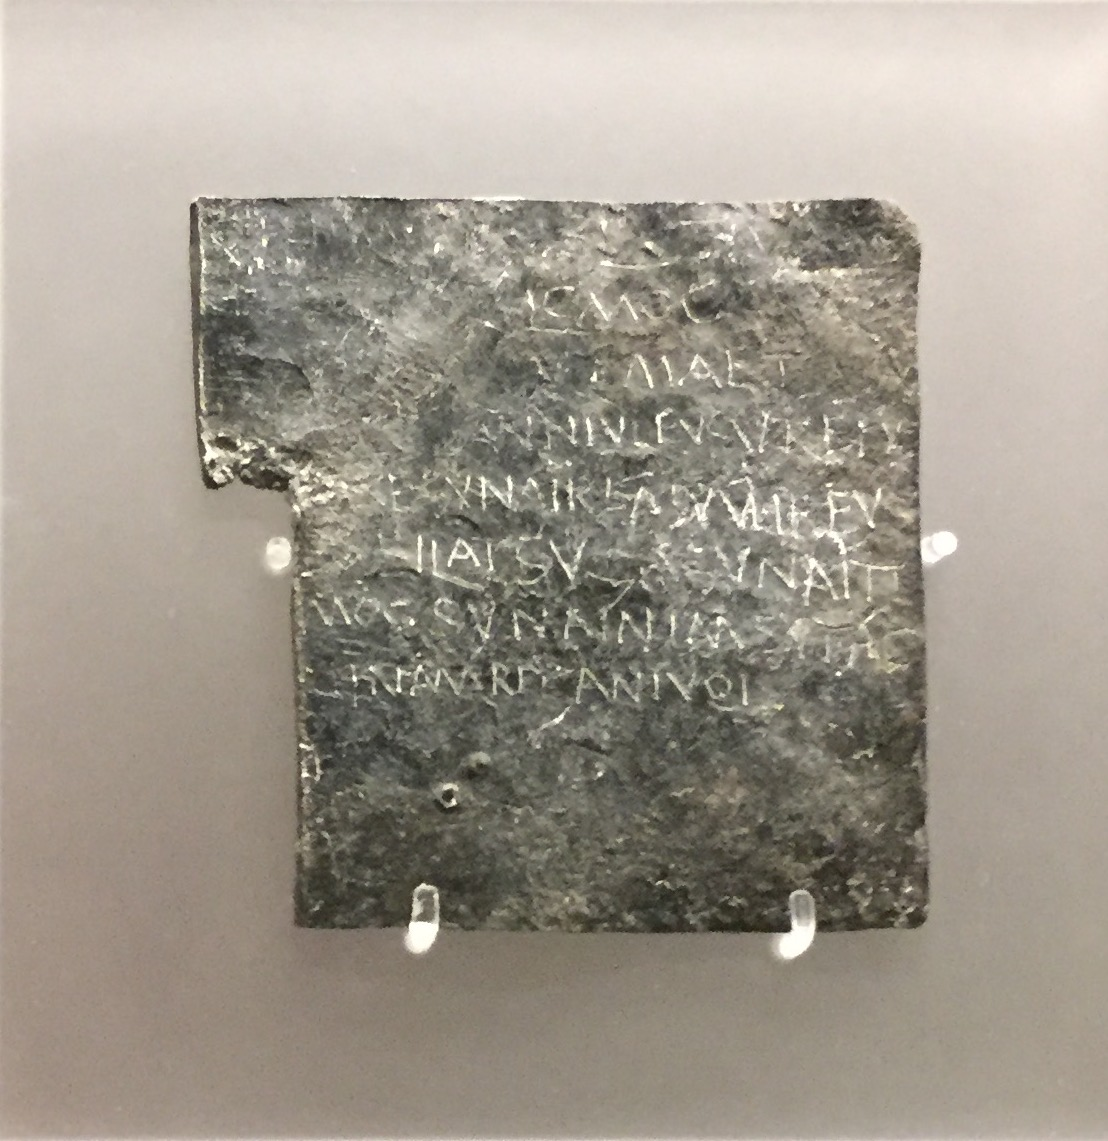 A rare complete and legible curse tablet